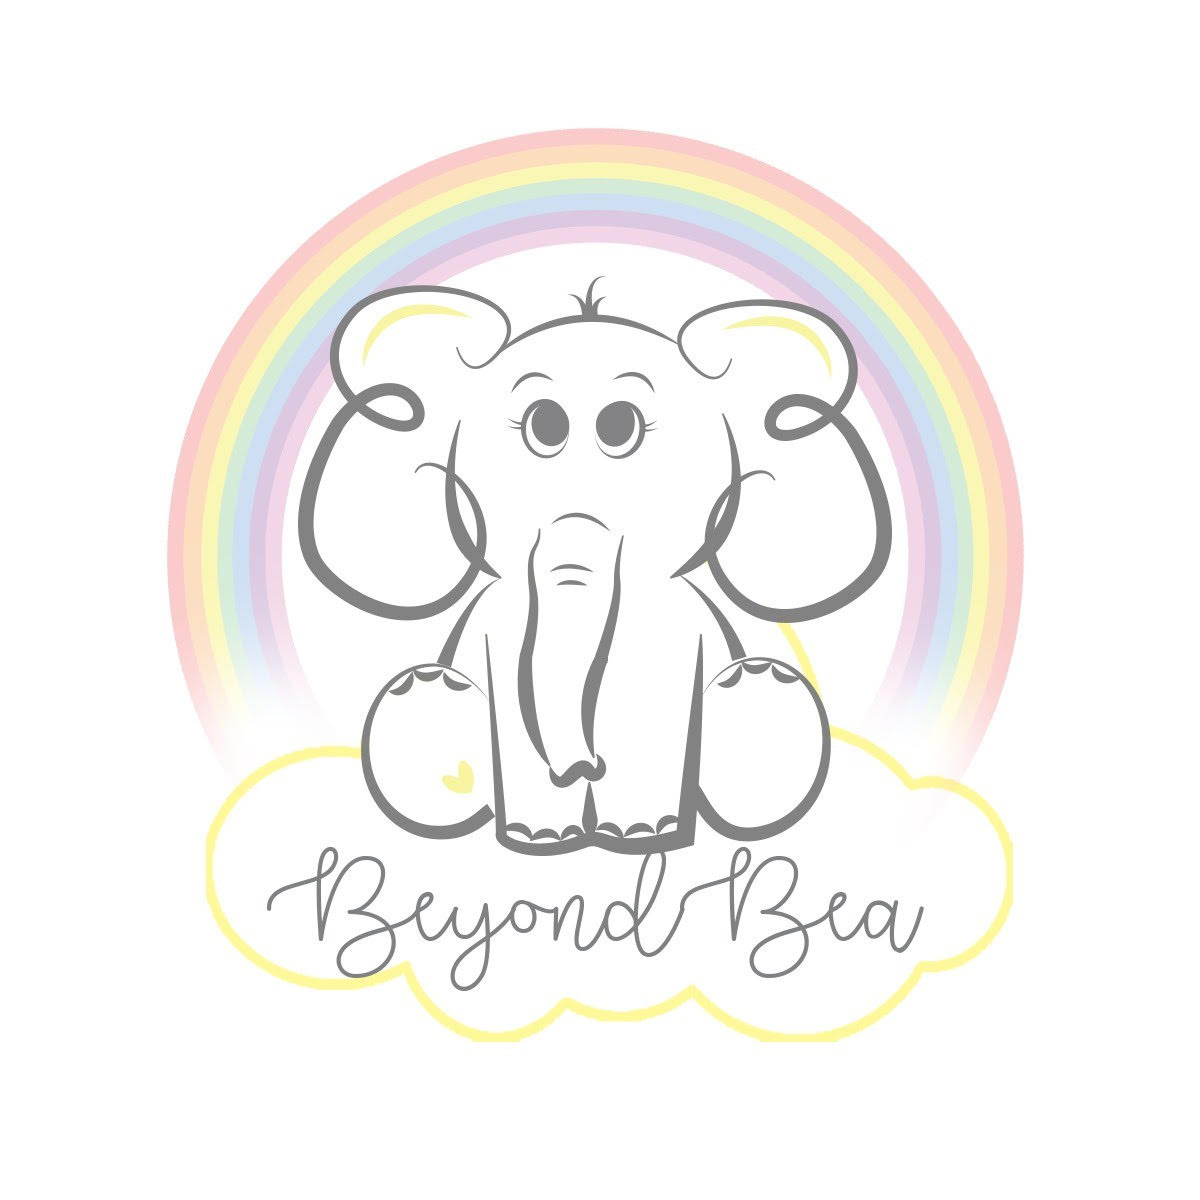 Beyond Bea Charity